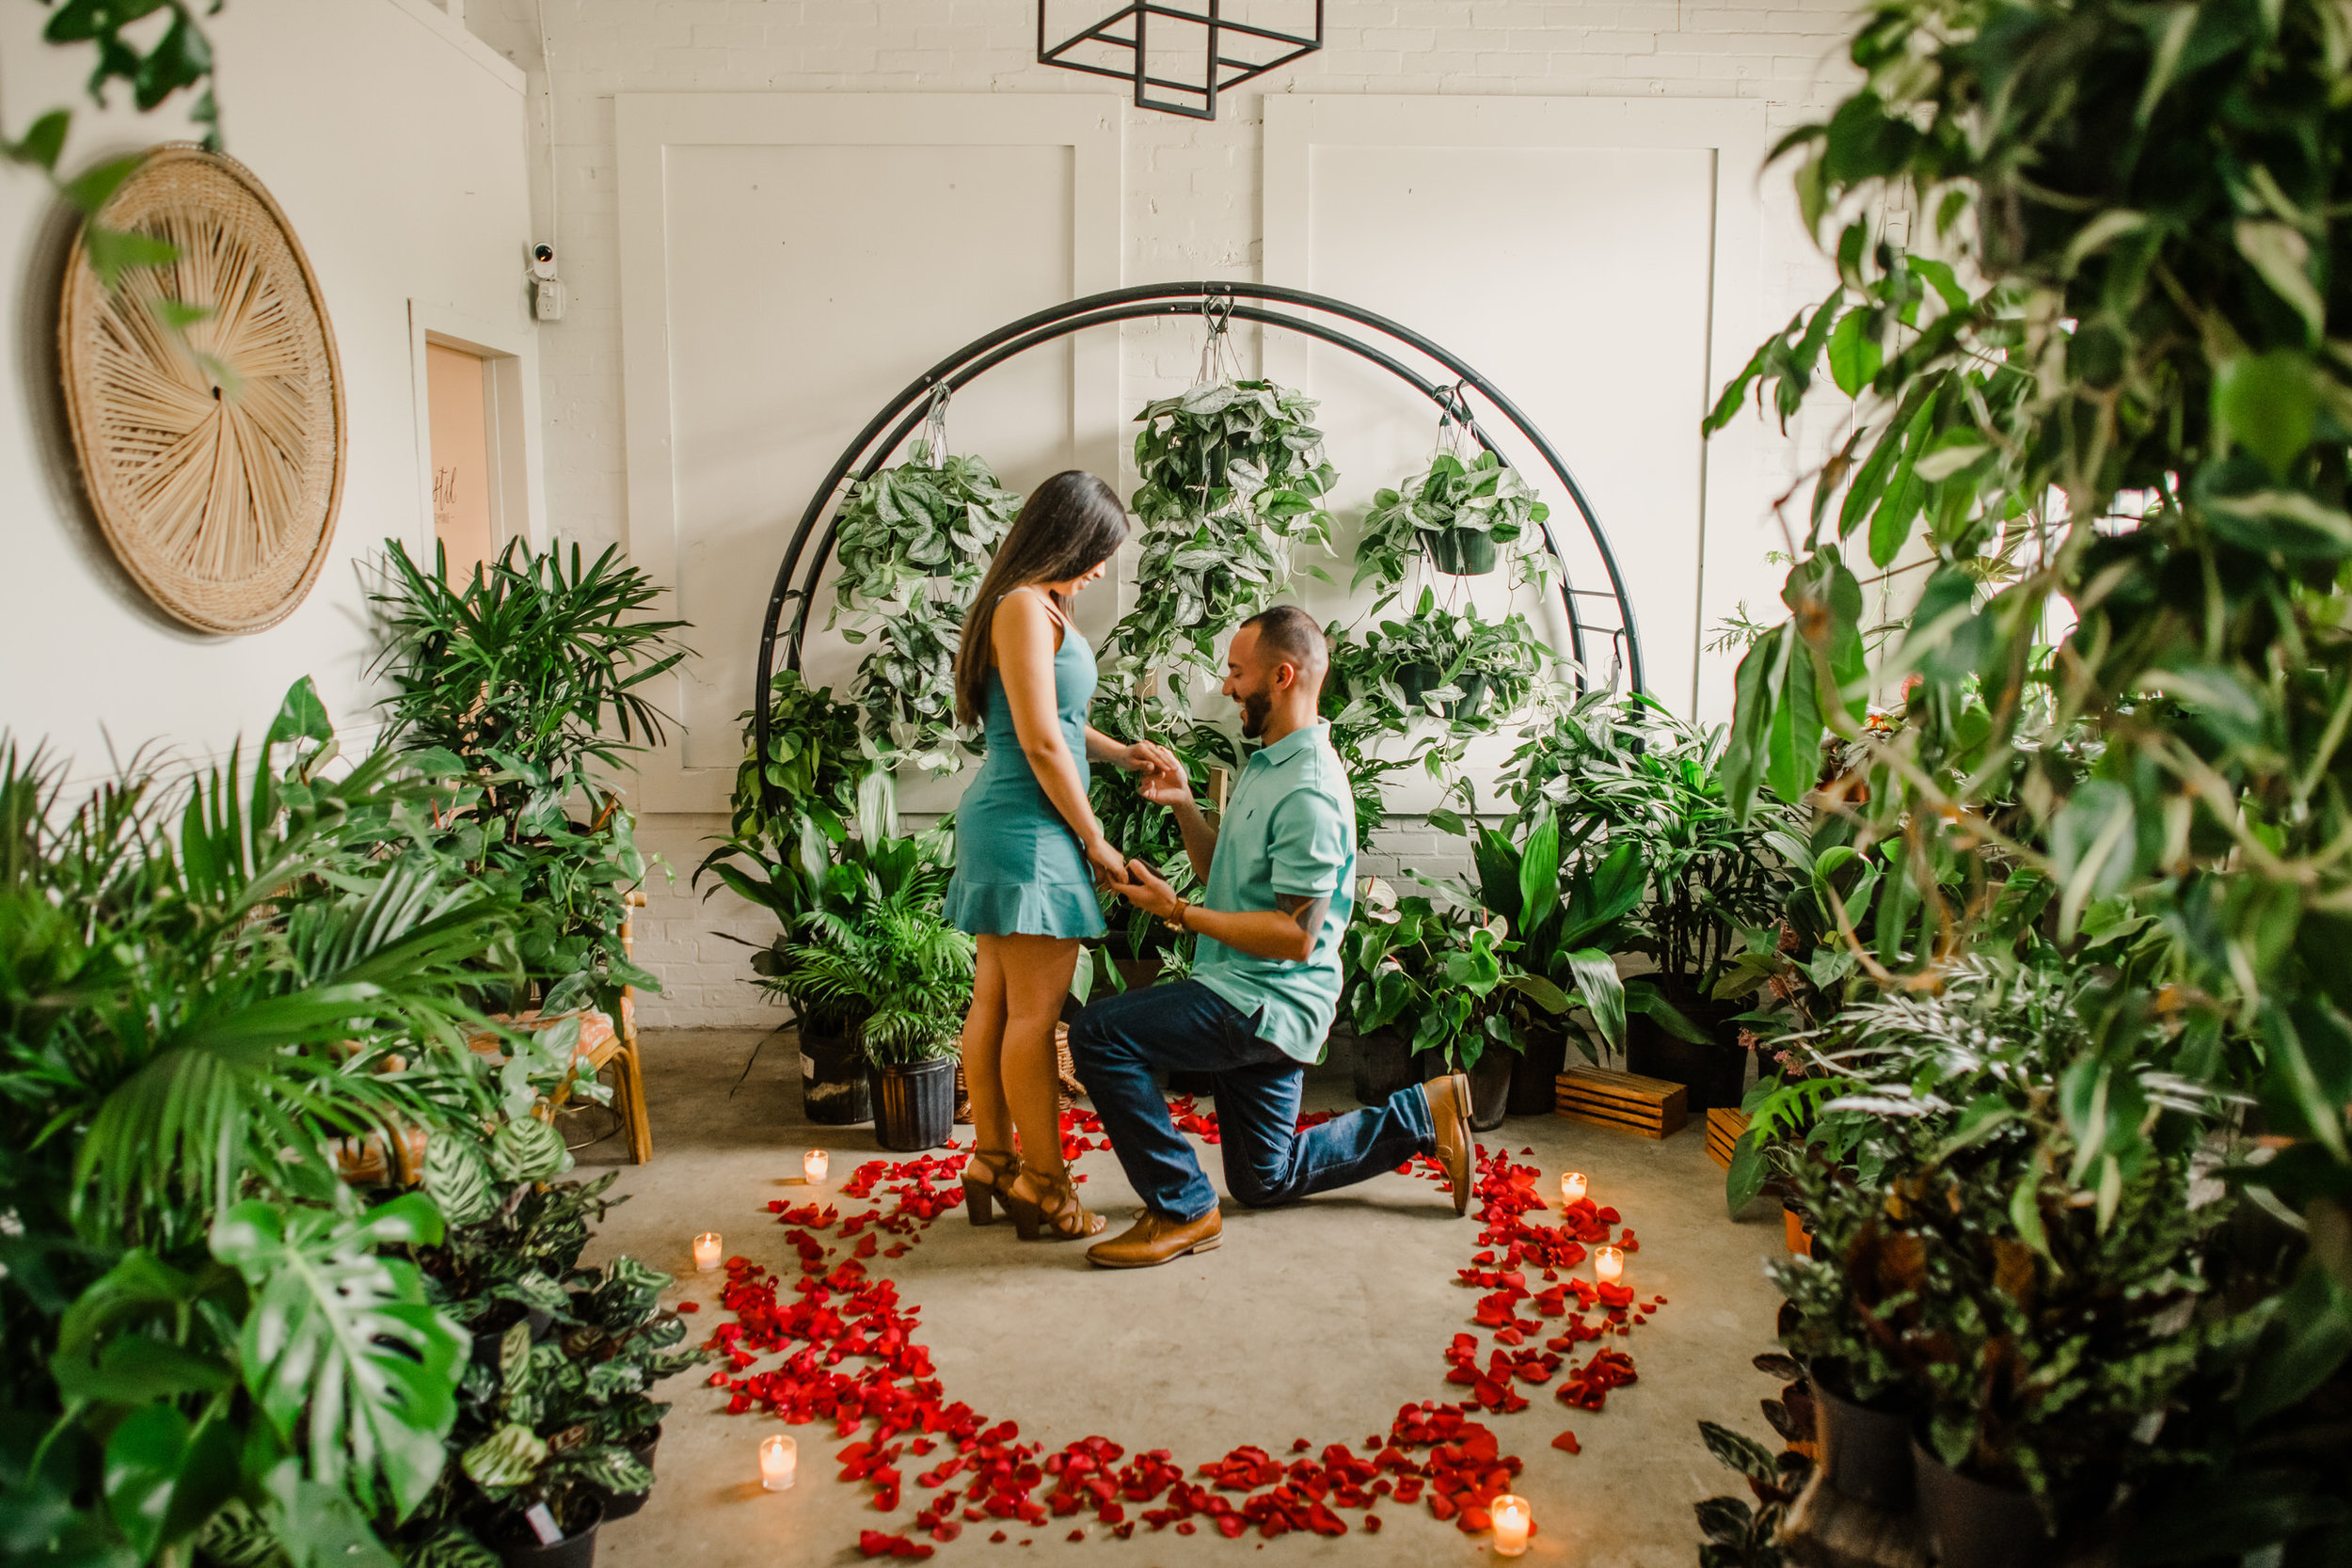 Valeria-Jonathan-Fancy-Free-Nursery-Tampa-Florida-Proposal-103.jpg